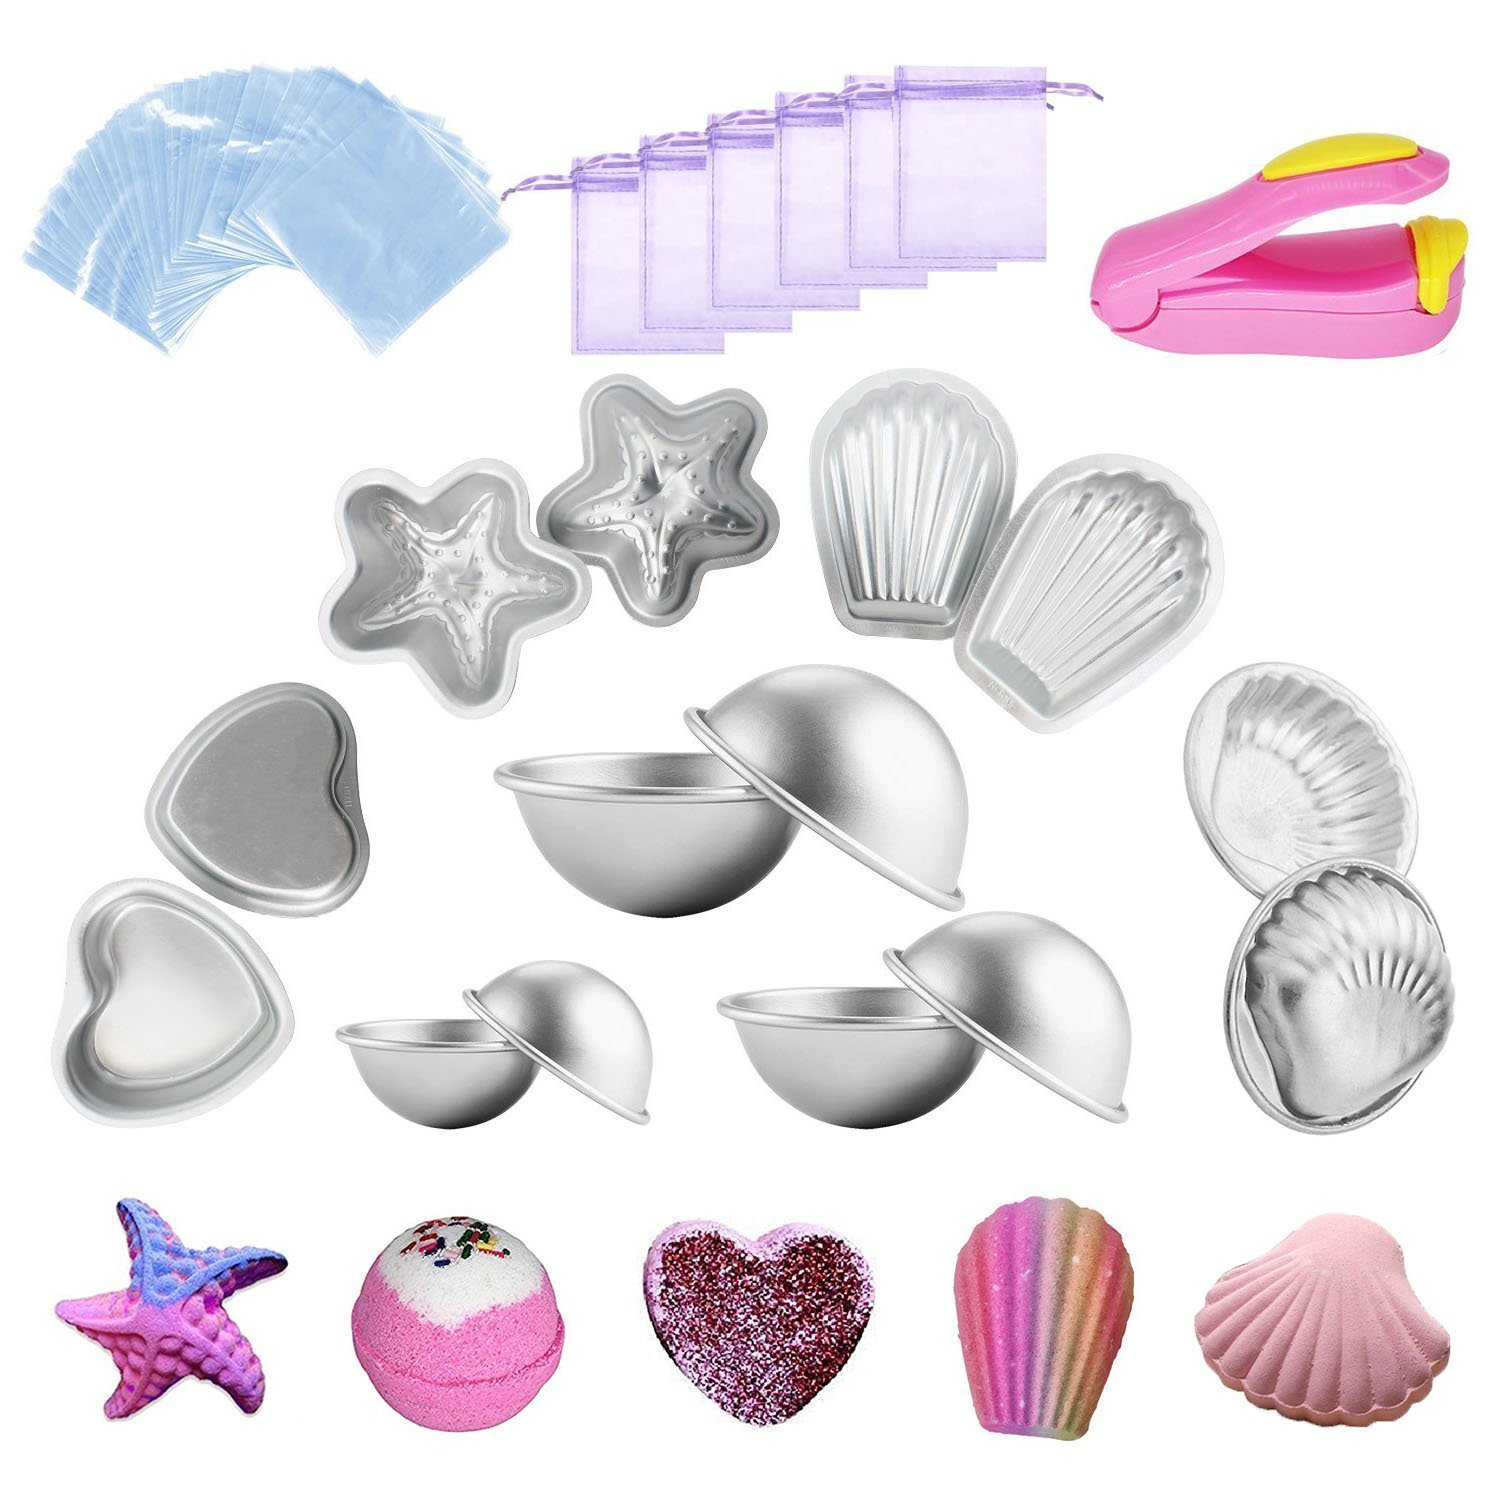 Kyerivs DIY Bath Bomb Molds Set Including 12 Pieces 3 Size DIY Metal Bath Bomb Molds, 1 Mini Heat Sealer, Wrapping papers, Shrink Wrap Bags, Label Stickers for Bath Bombs Handmade 4336902509